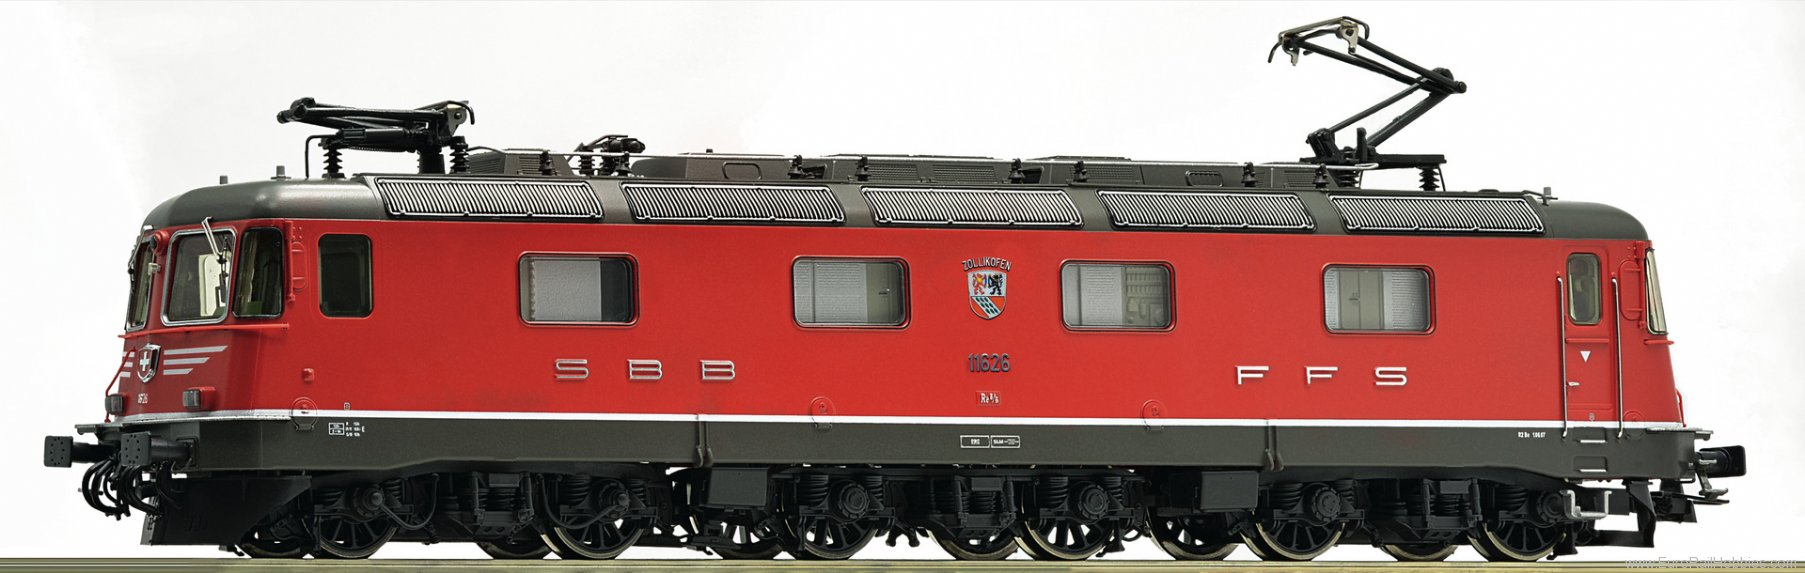 Roco 72601 Electric locomotive Re6/6 11626, SBB (Digital